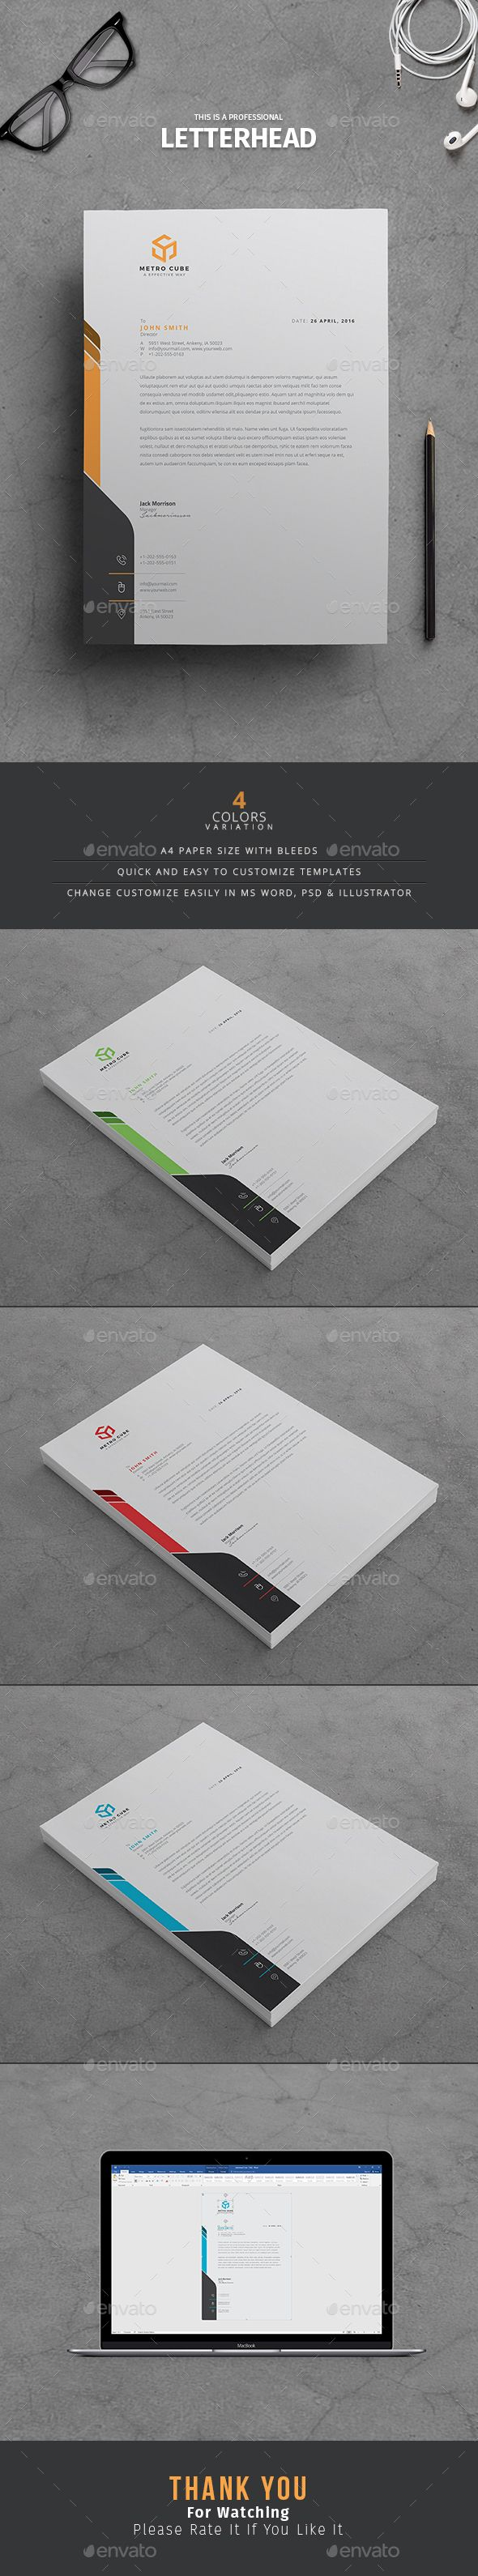 99 best letterhead images on pinterest design patterns design letterhead template psd vector eps ai illustrator ms word spiritdancerdesigns